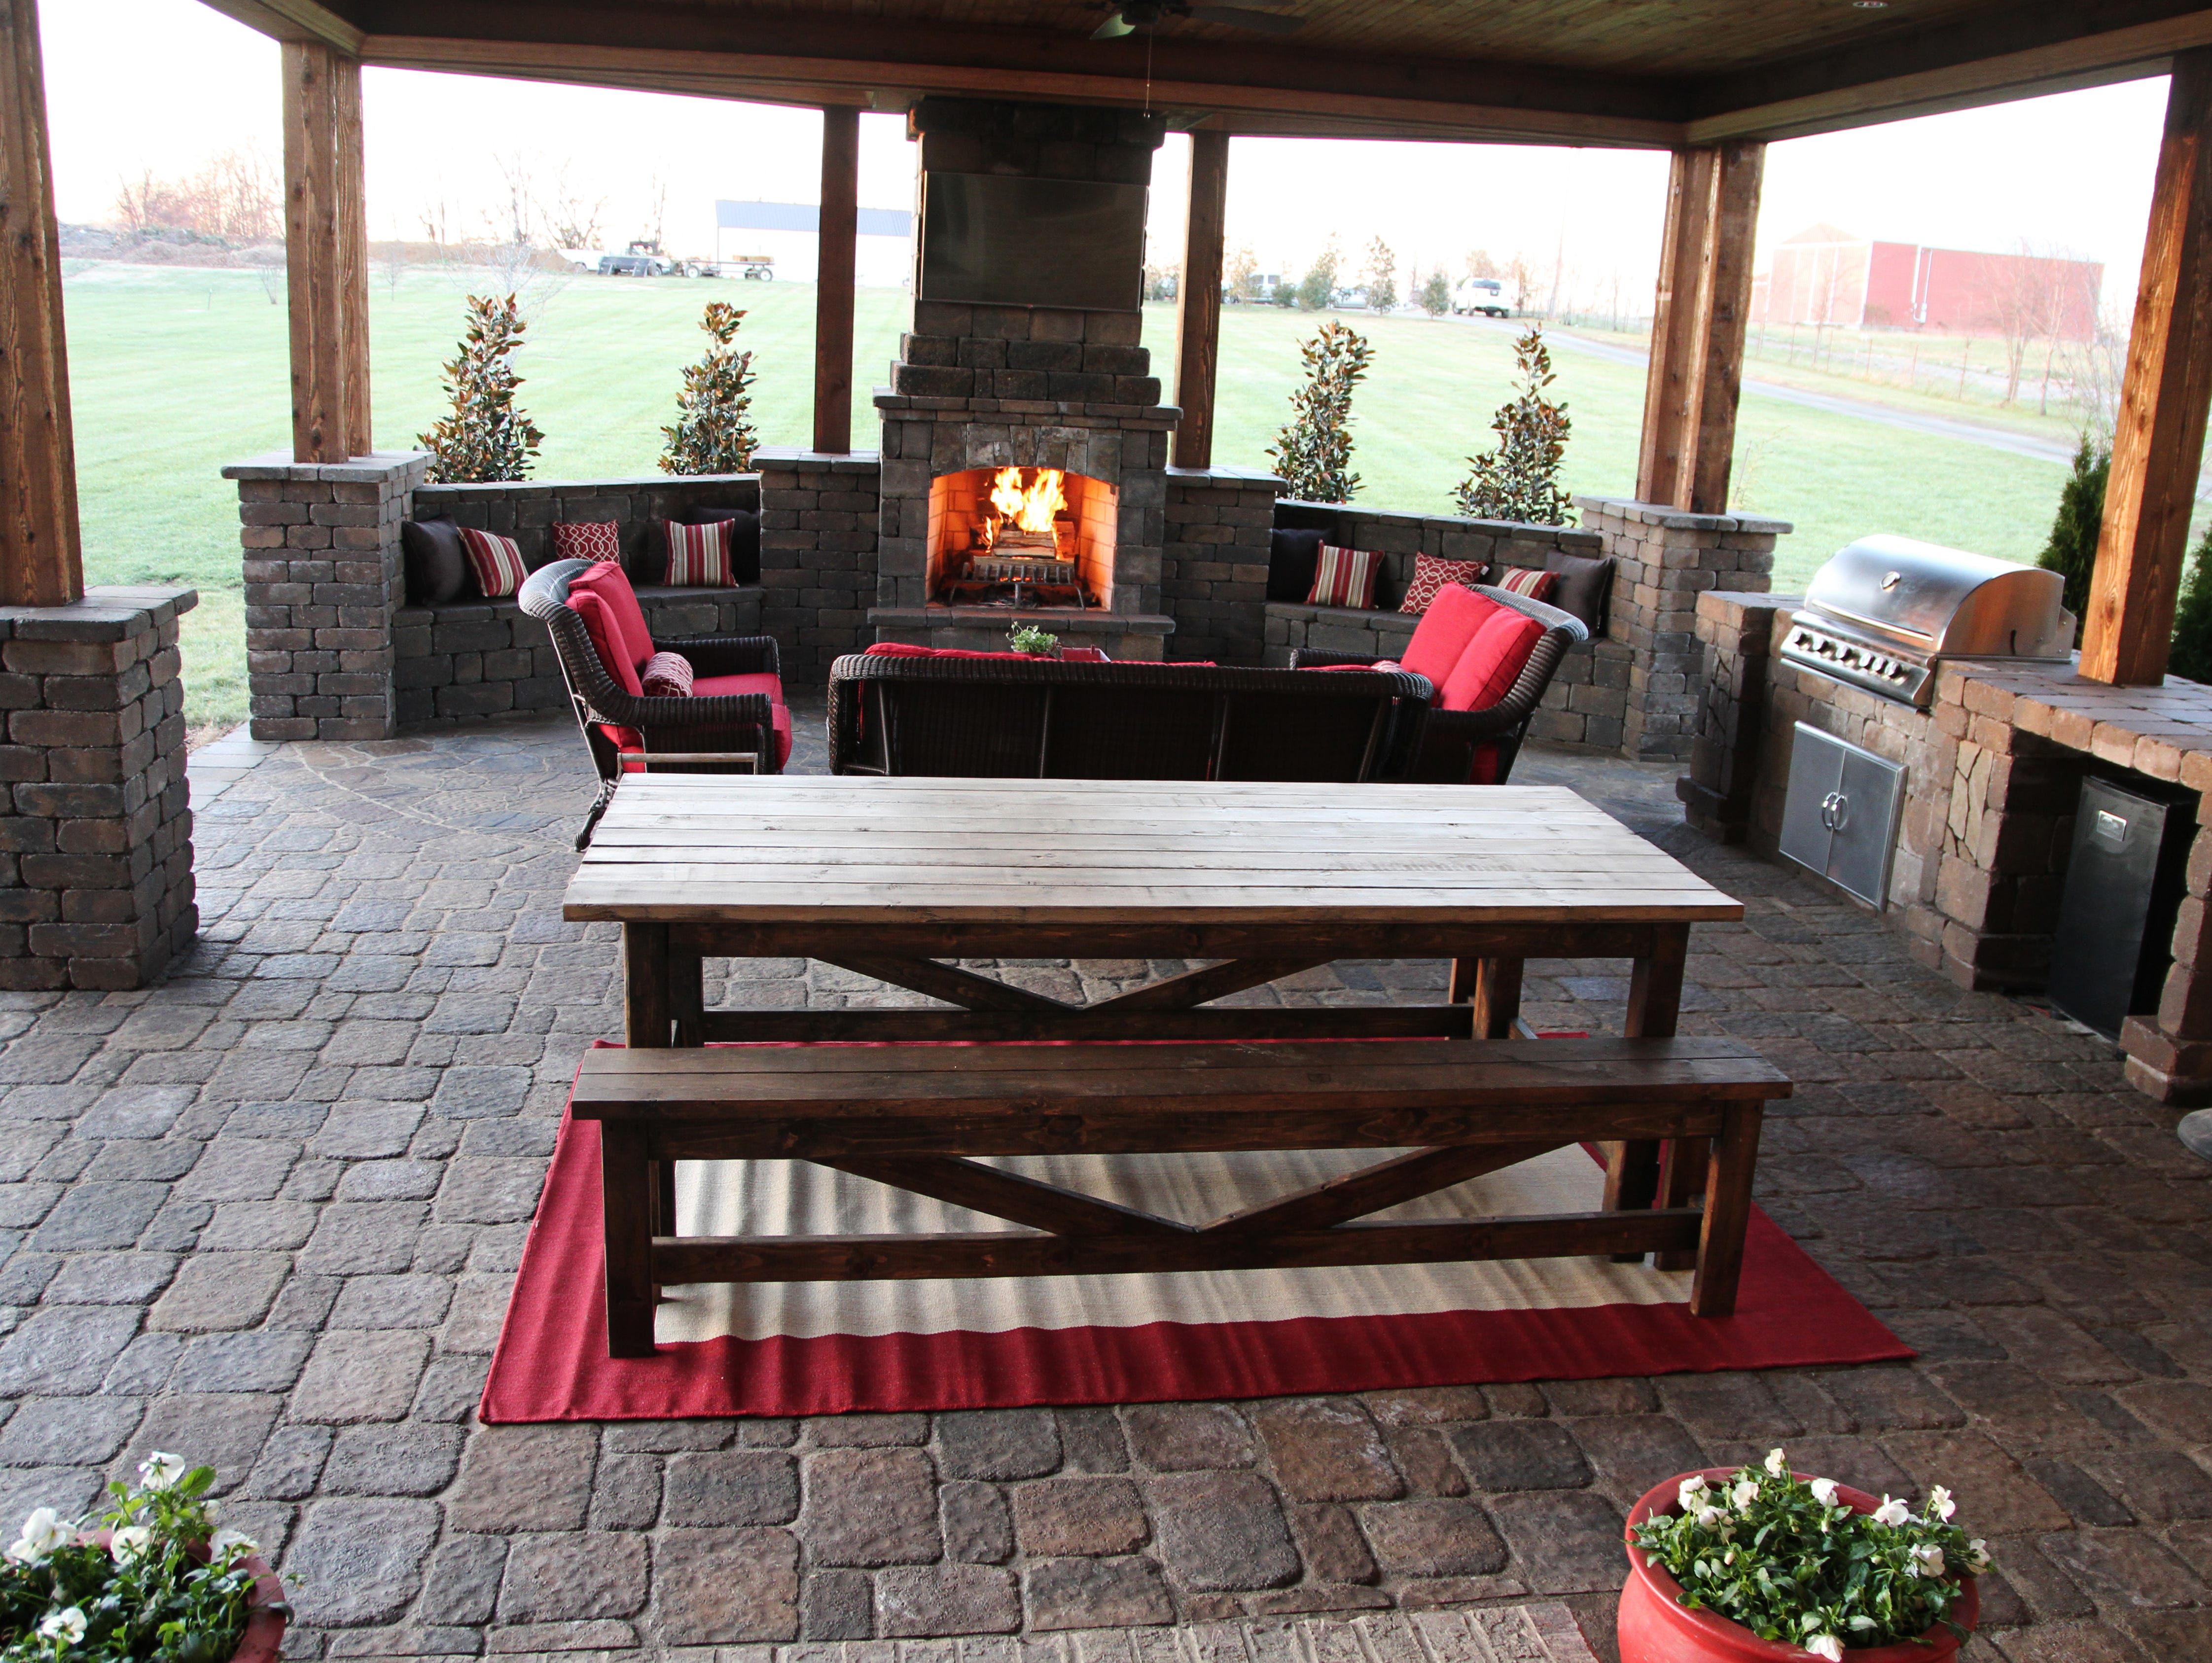 outdoor living spaces with fireplace pacific northwest outdoor jared crains covered outdoor living area has fireplace outdoor spaces one of biggest trends for 2018